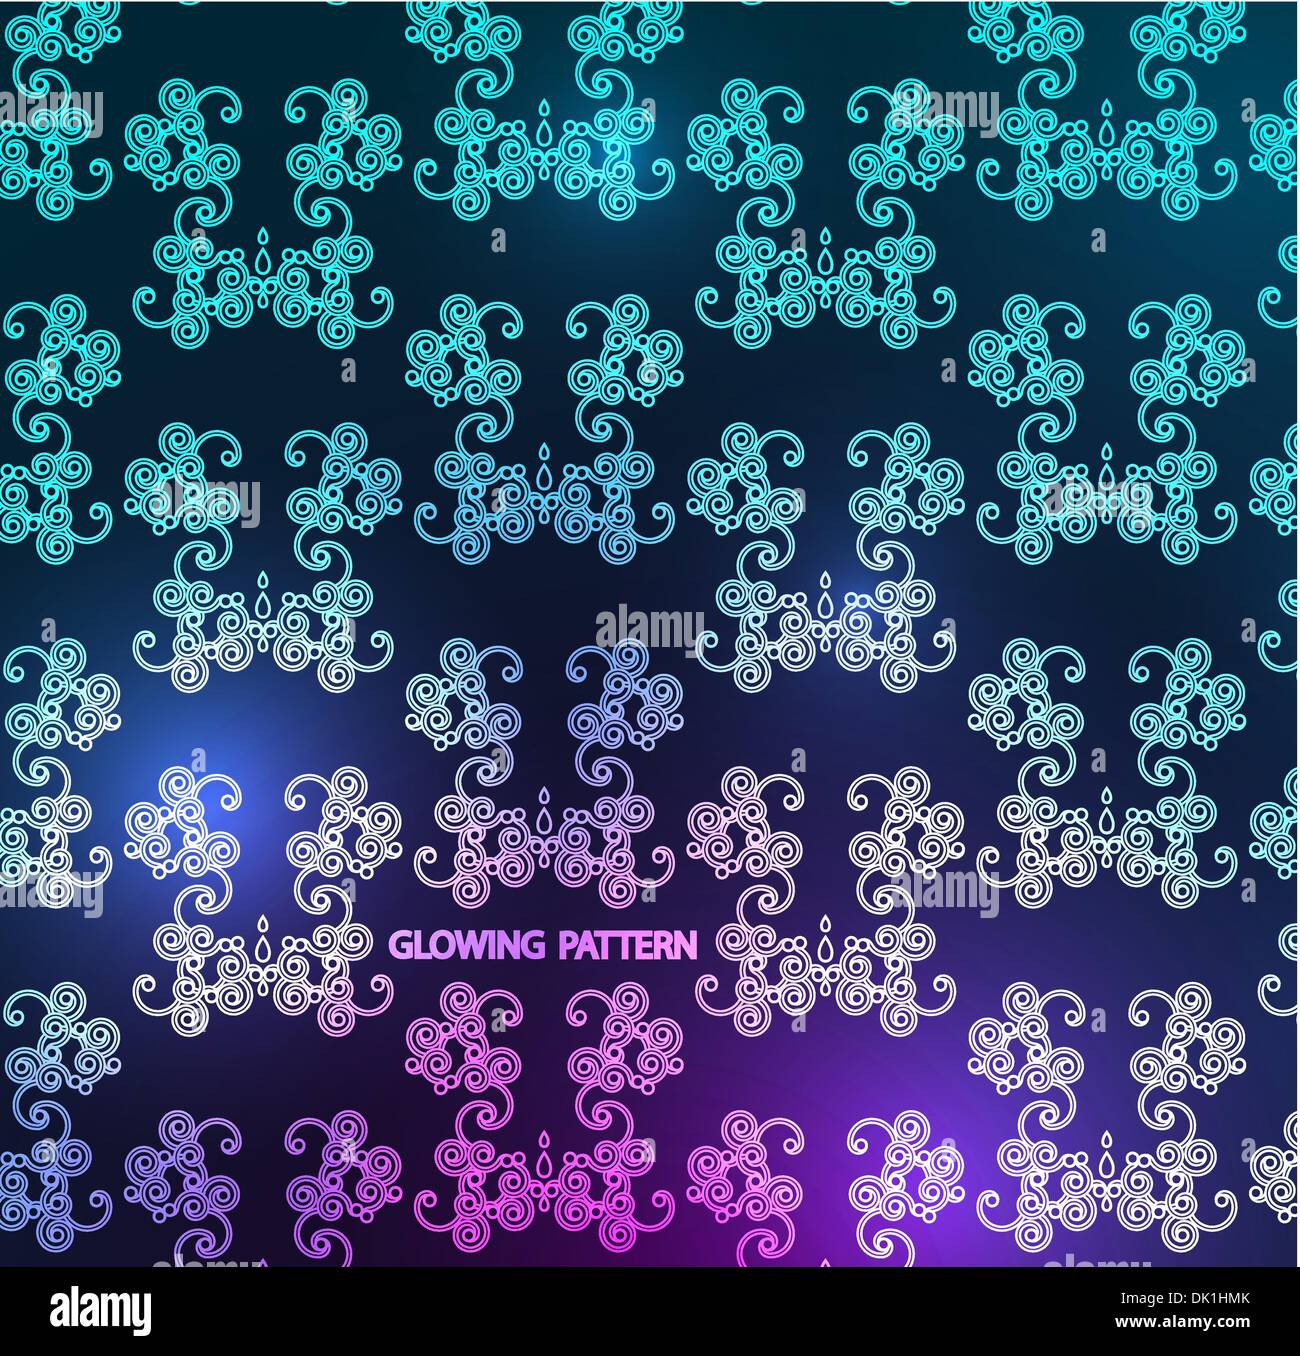 Glowing Wallpaper Pattern For Your Project Stock Vector Art